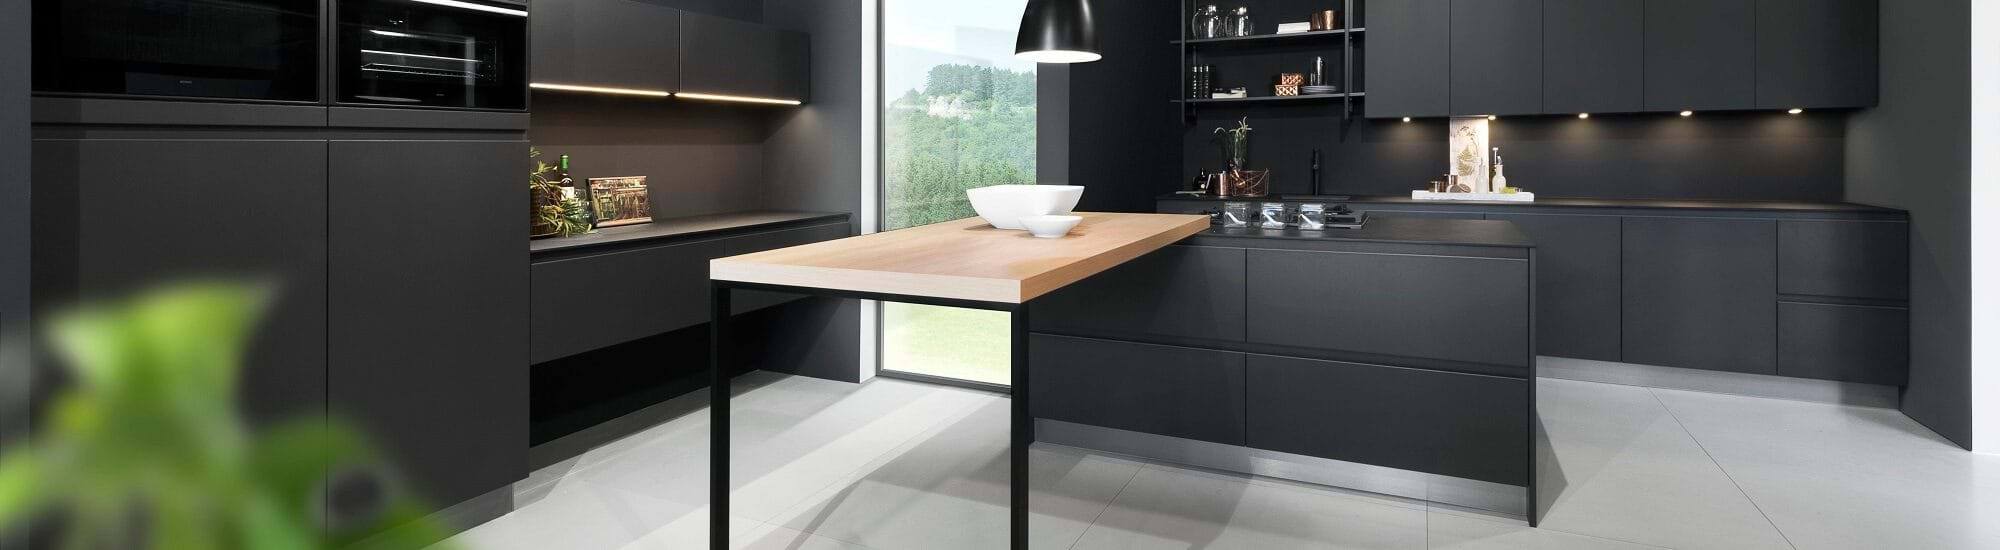 Rotpunkt kitchen in black colour scheme with matt finish and handleless cabinets